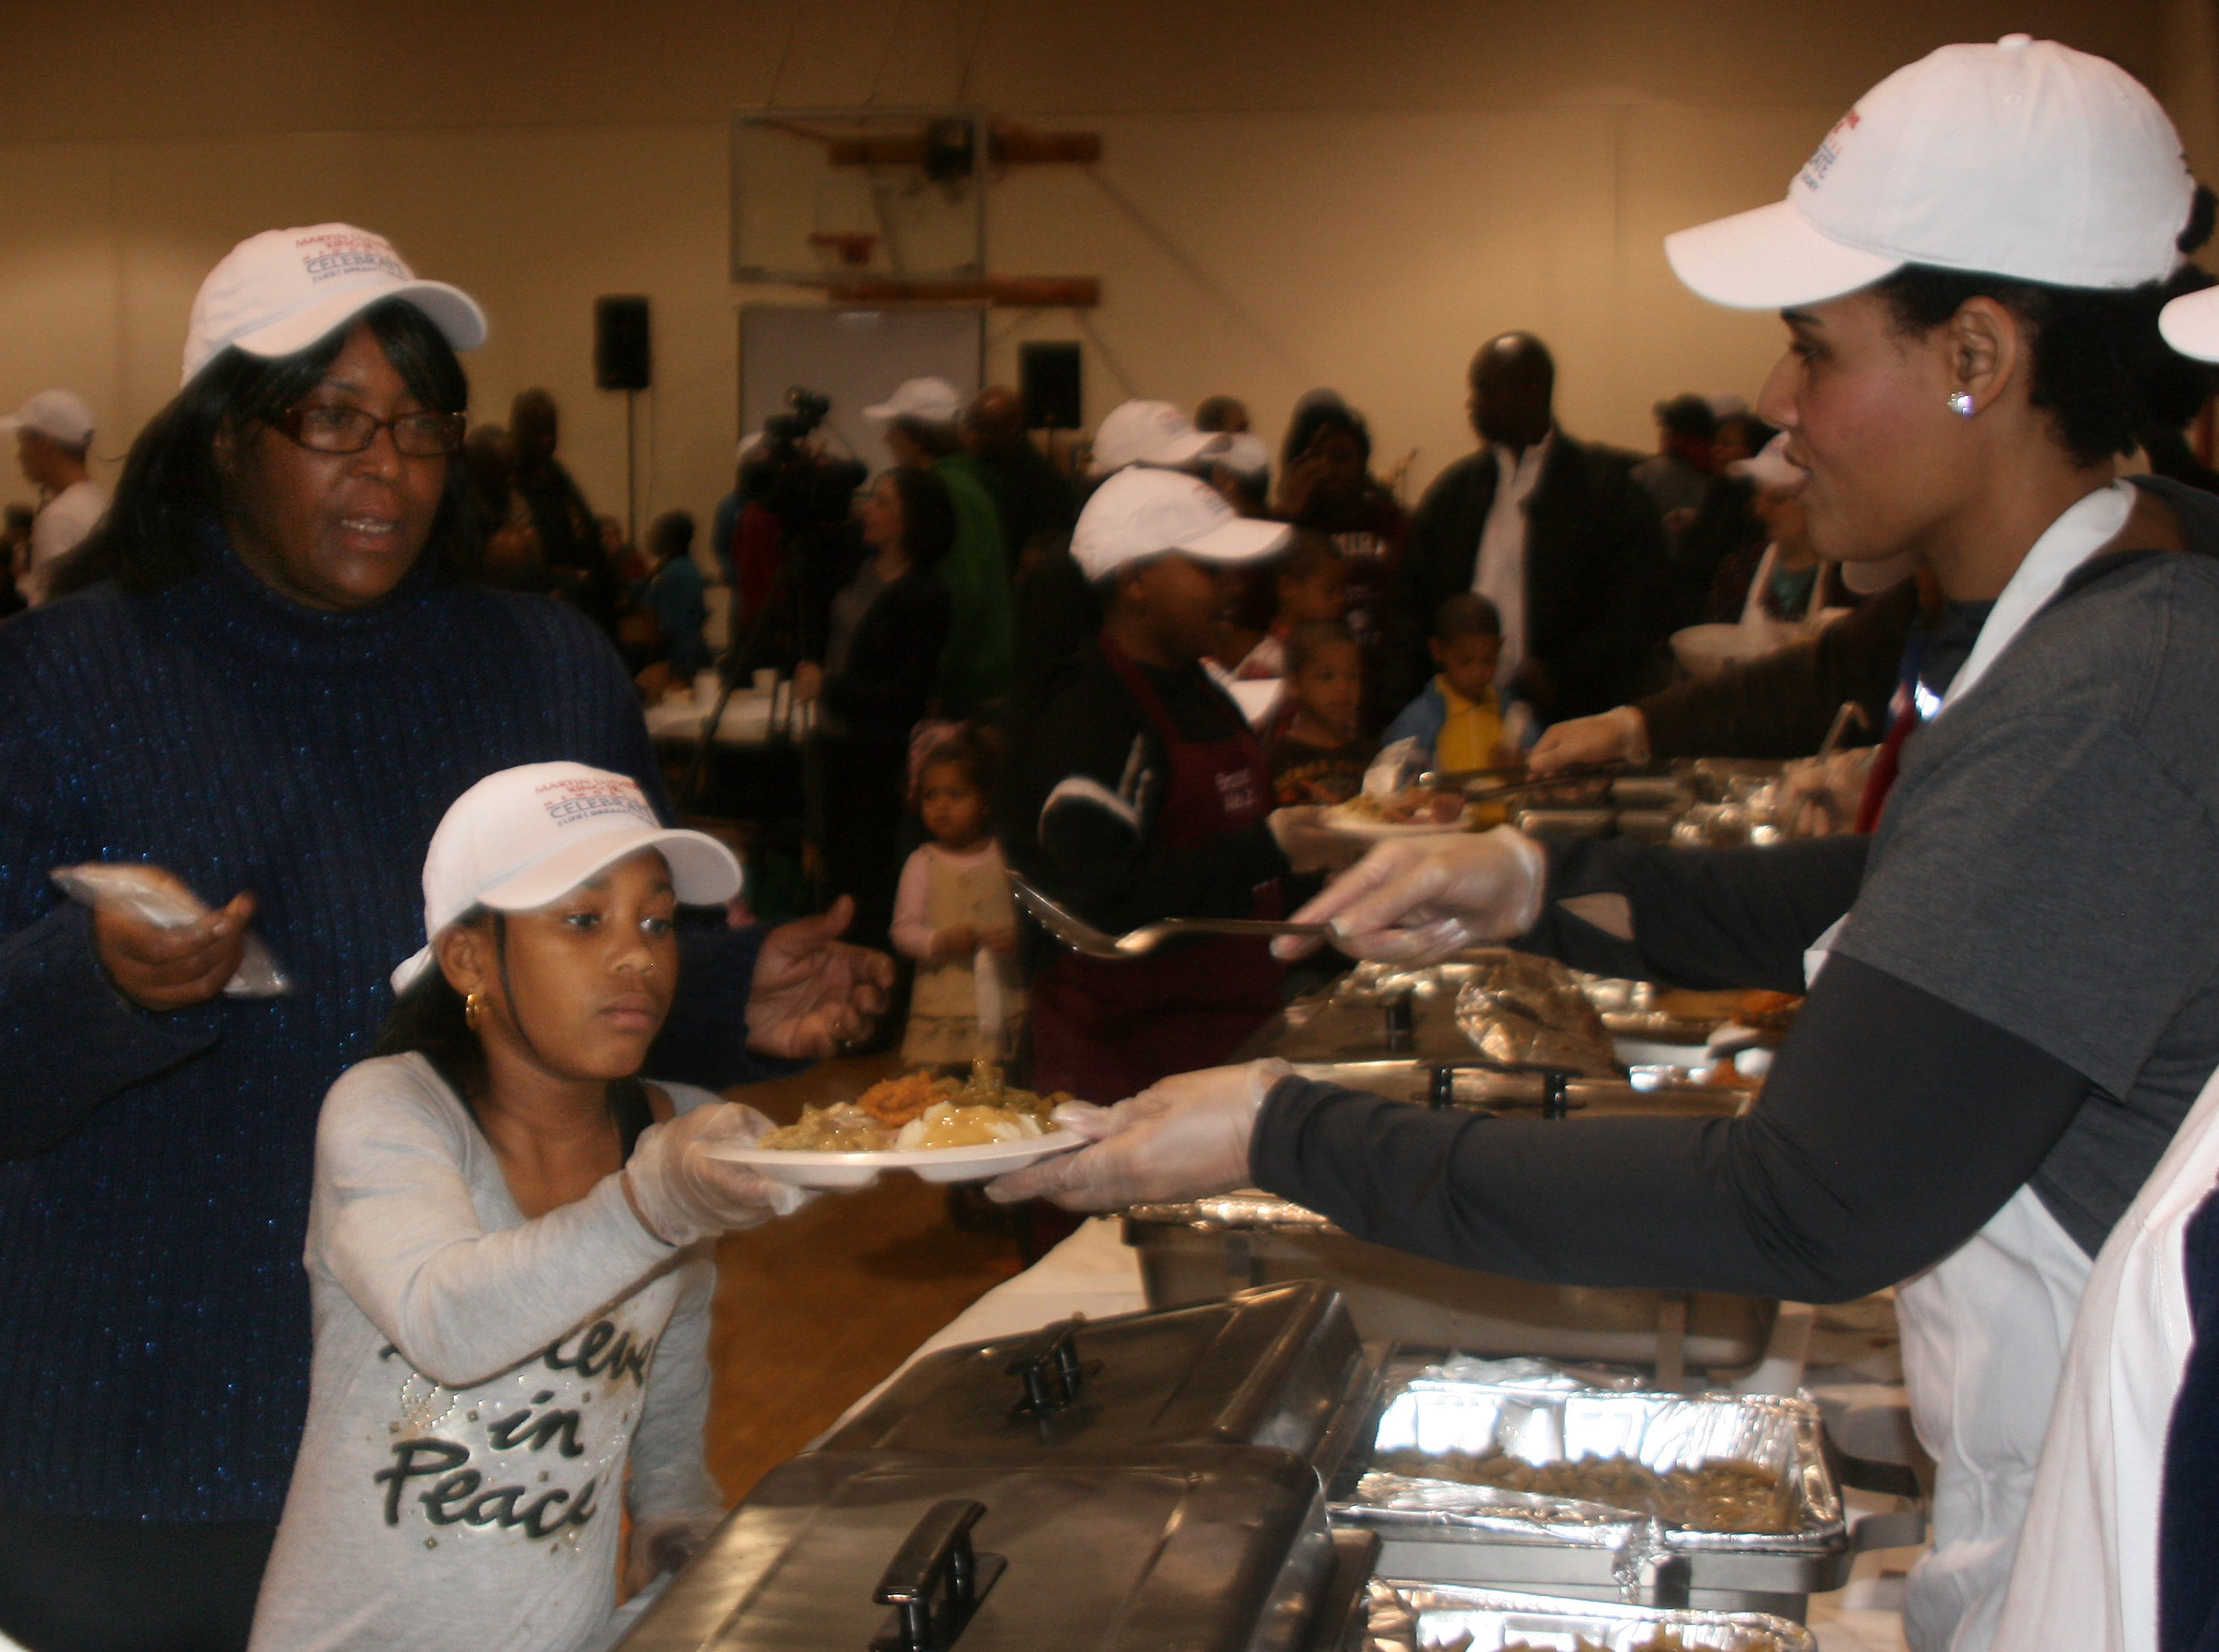 2012: Dinner is served Monday afternoon during the 14th annual Together We Dine event held Monday at the Ernie Davis Community Center in Elmira to celebrate the observance of Dr. Martin Luther King Jr. Day.